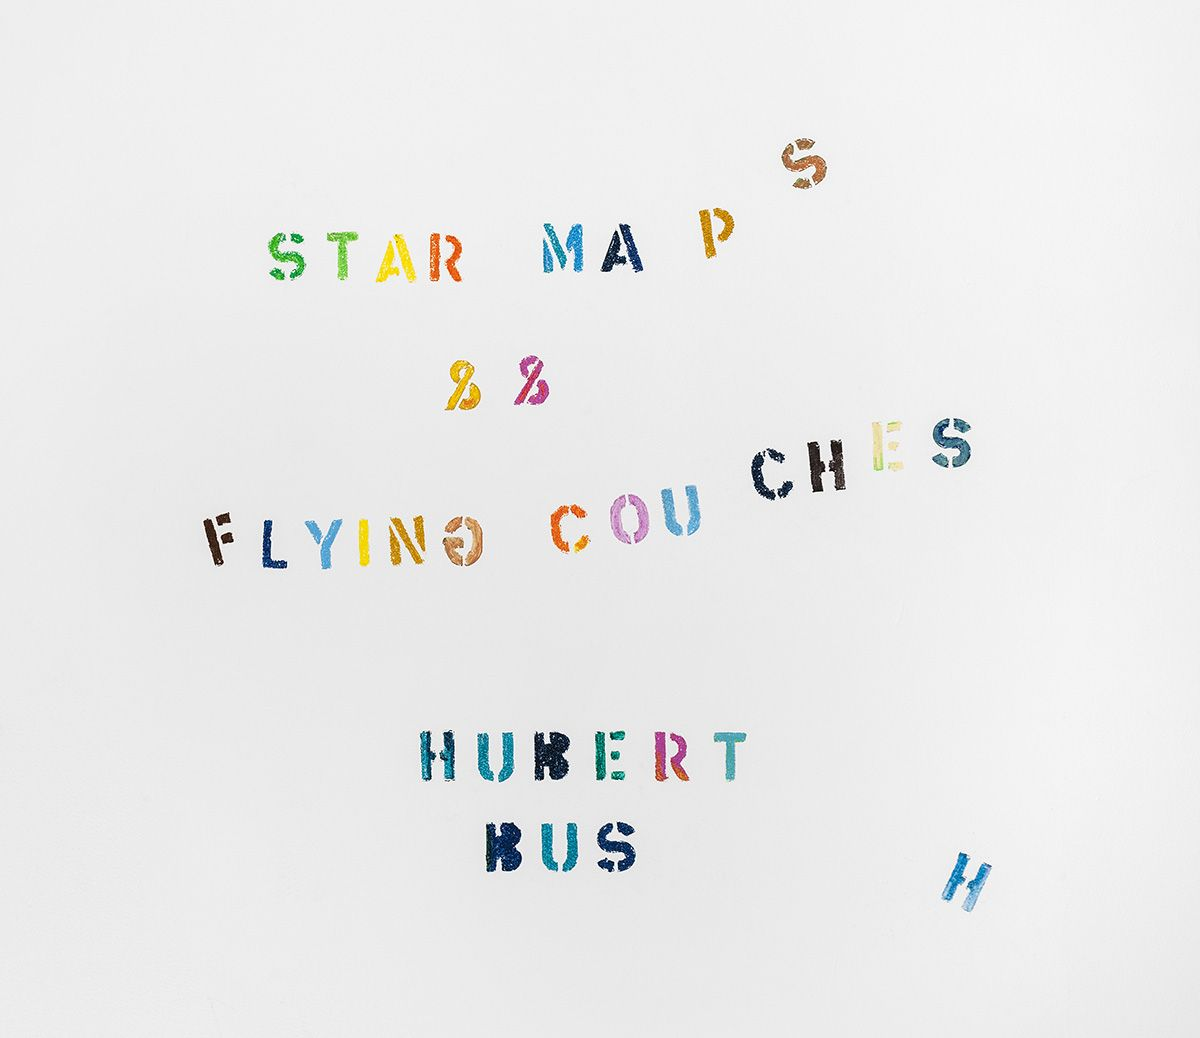 """Hubert Bush """"Star Maps and Flying Couches"""""""